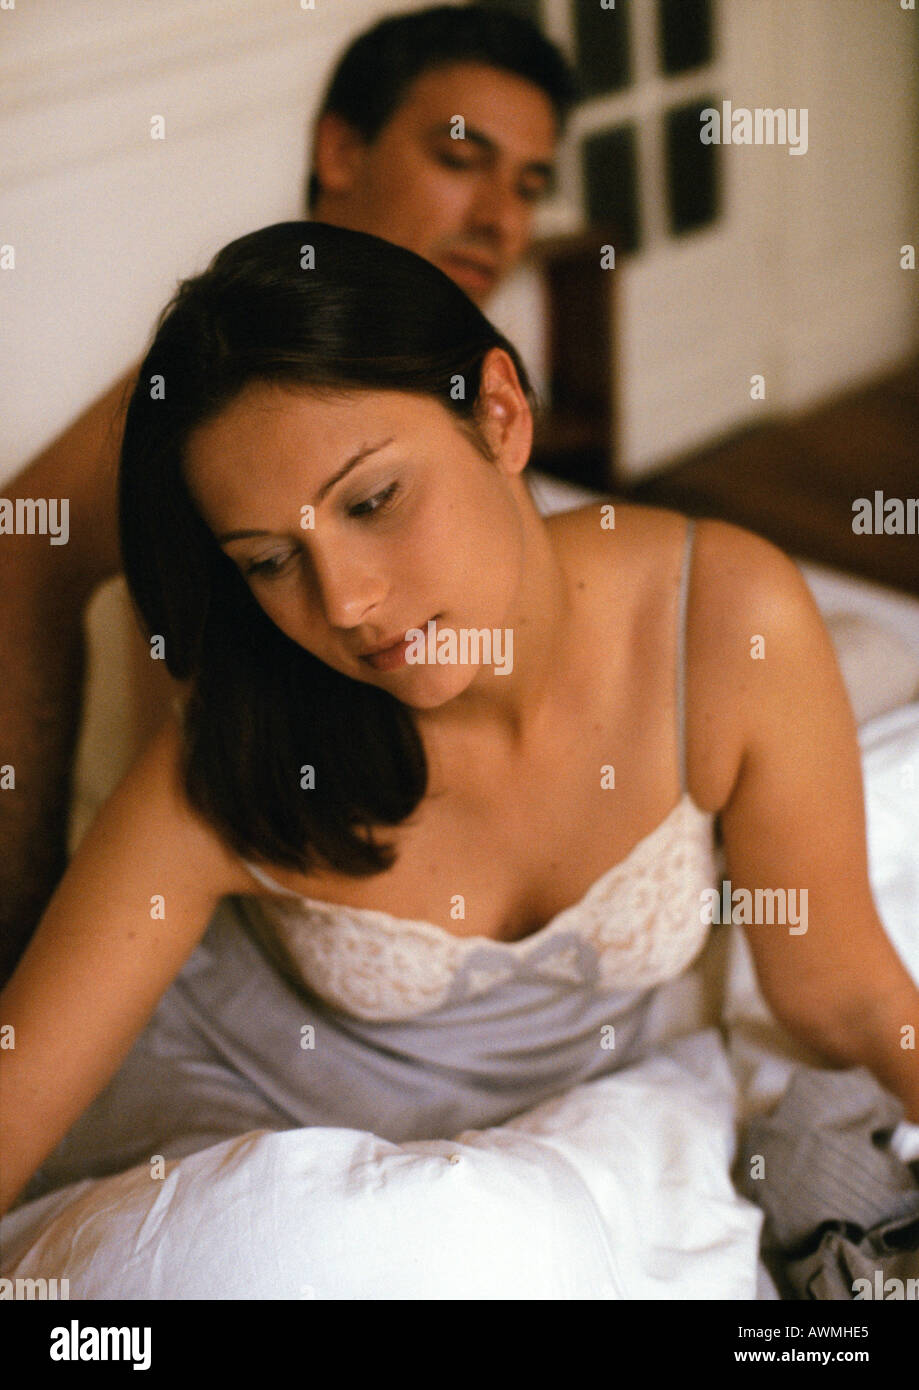 Couple on bed, focus on woman in foreground - Stock Image